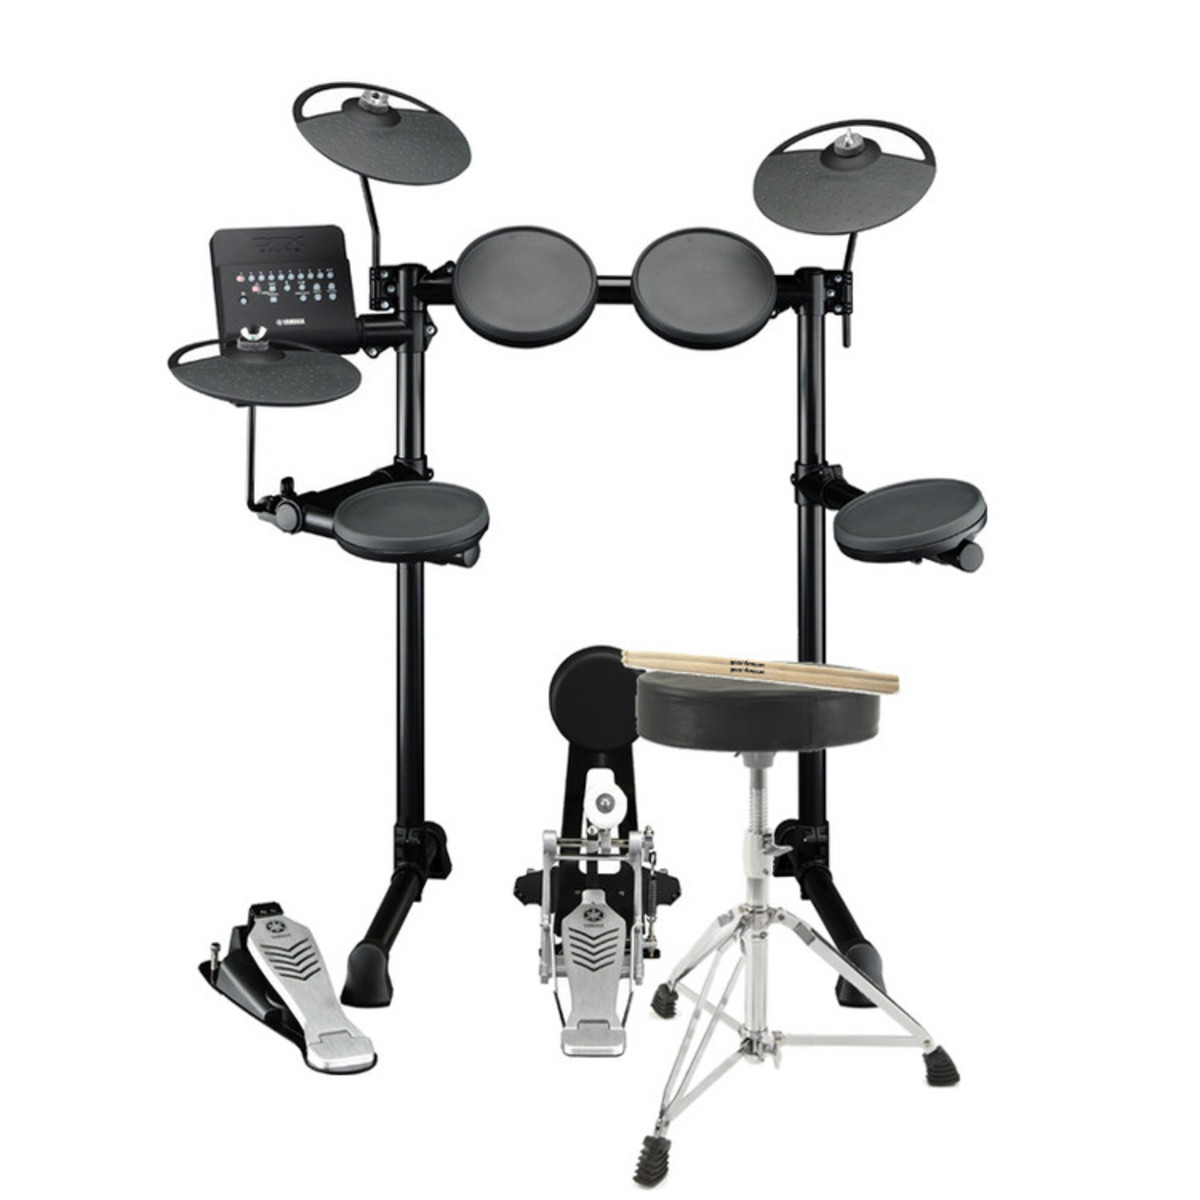 Yamaha dtx430k electronic drum kit including stool and for Yamaha electronic drum kit for sale